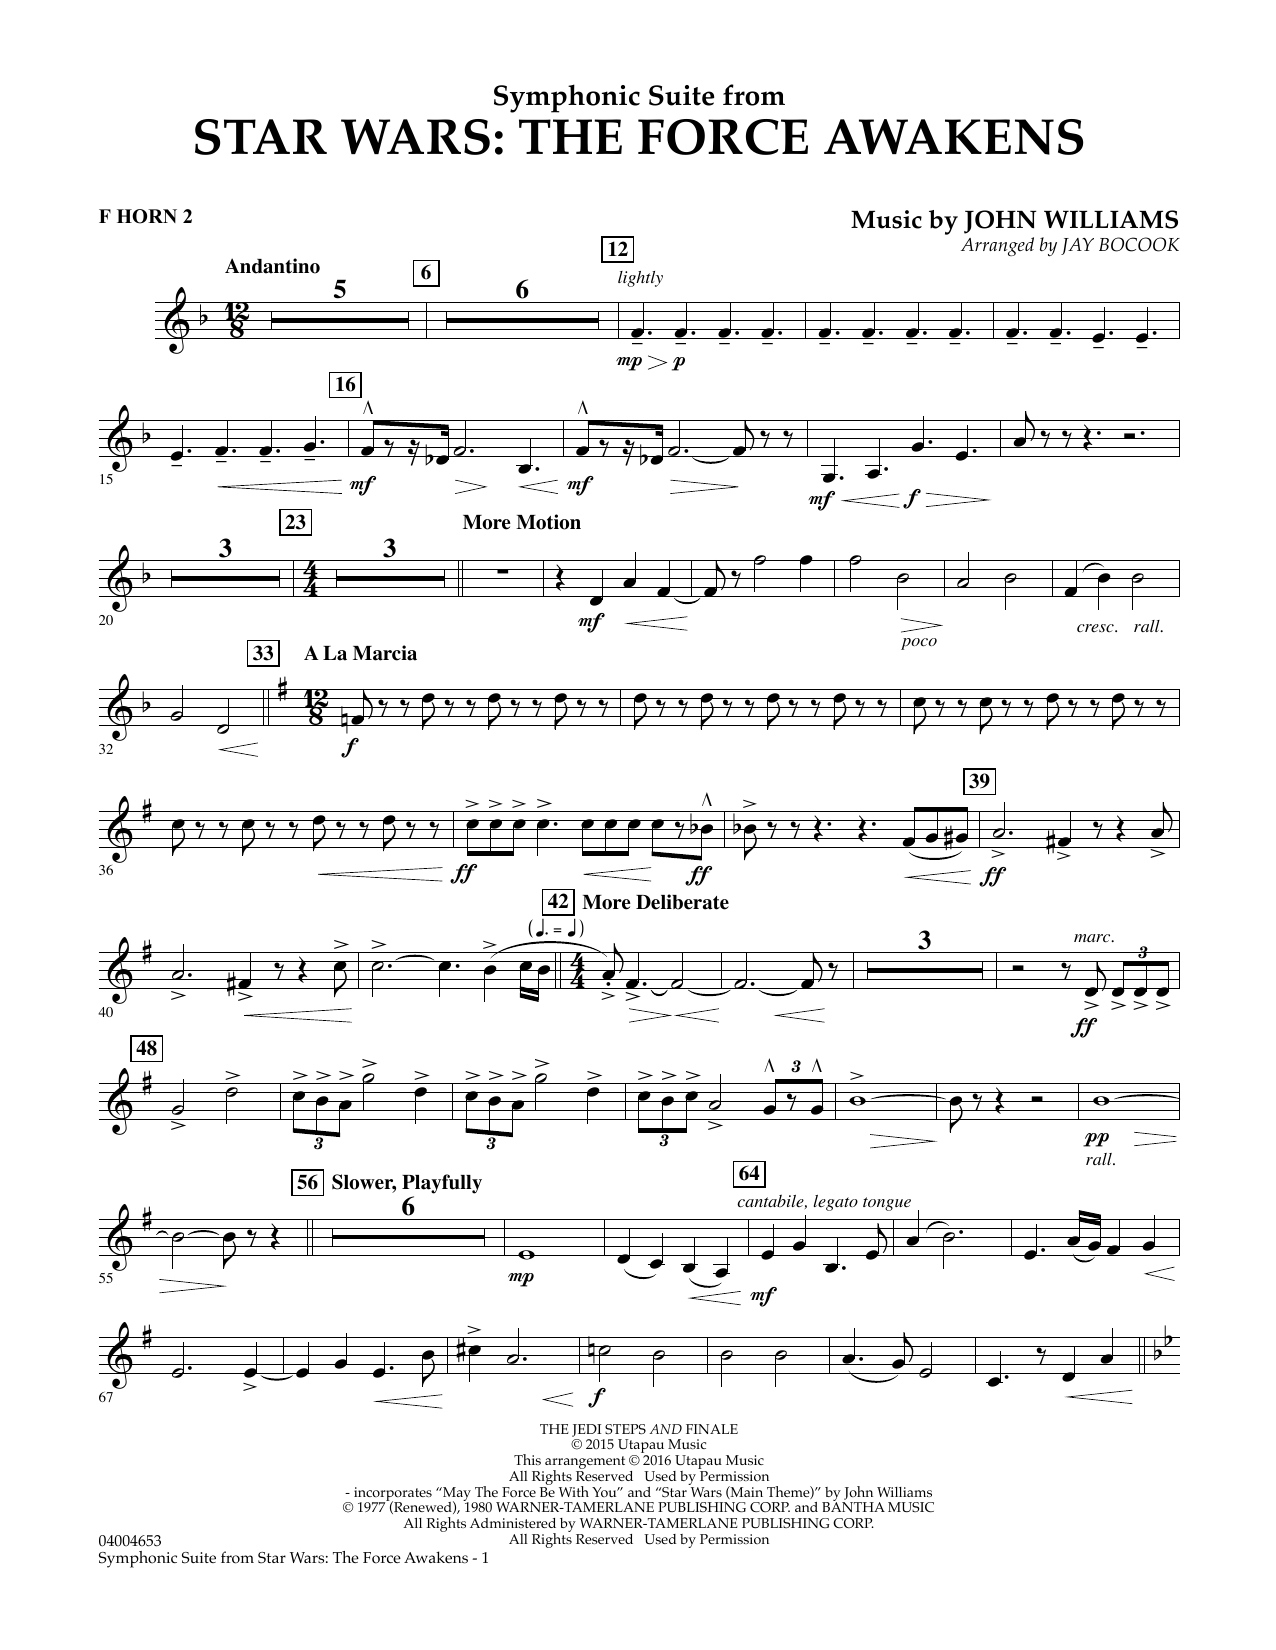 John Williams - Symphonic Suite from Star Wars: The Force Awakens - F Horn 2